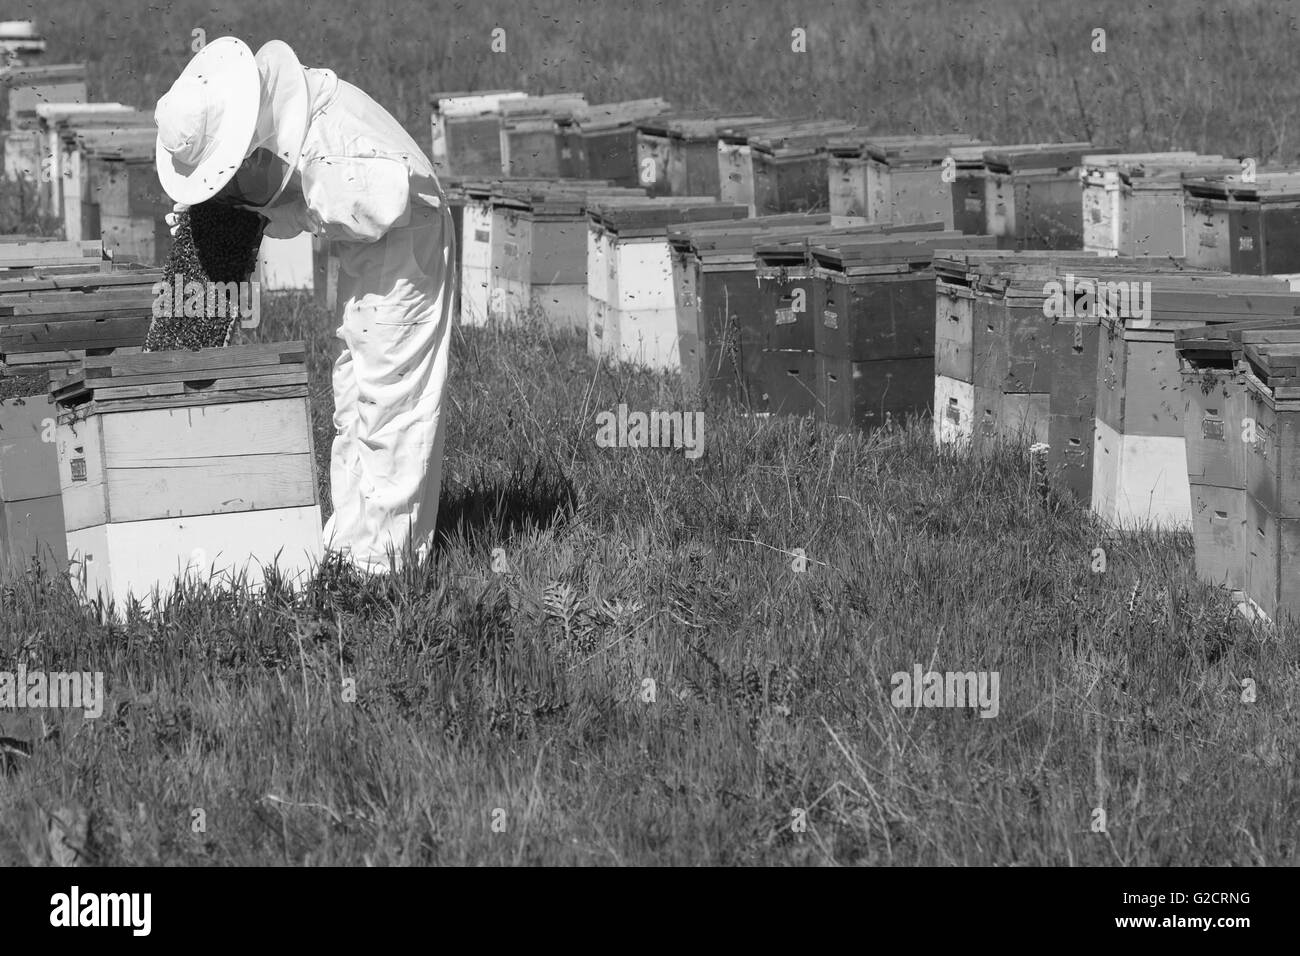 horizontal side view of a beekeeper in a ehite protection suit checking the honey comb in the hive - Stock Image